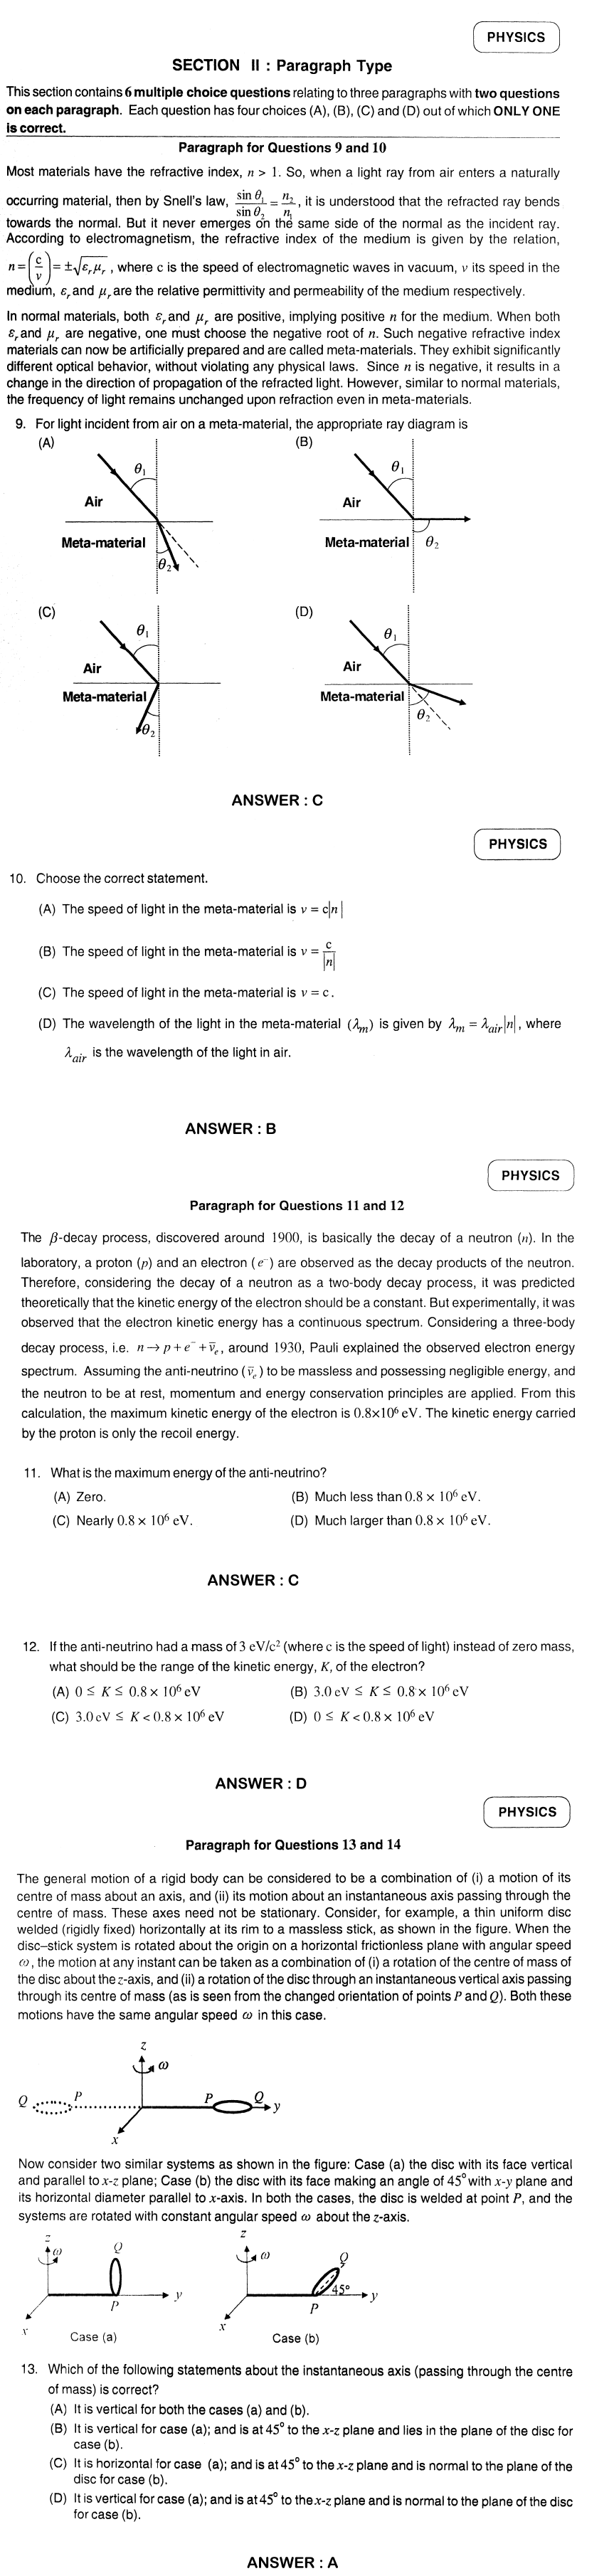 IIT JEE 2012 Question Papers & Answers   Paper 2 in jee advanced  Category